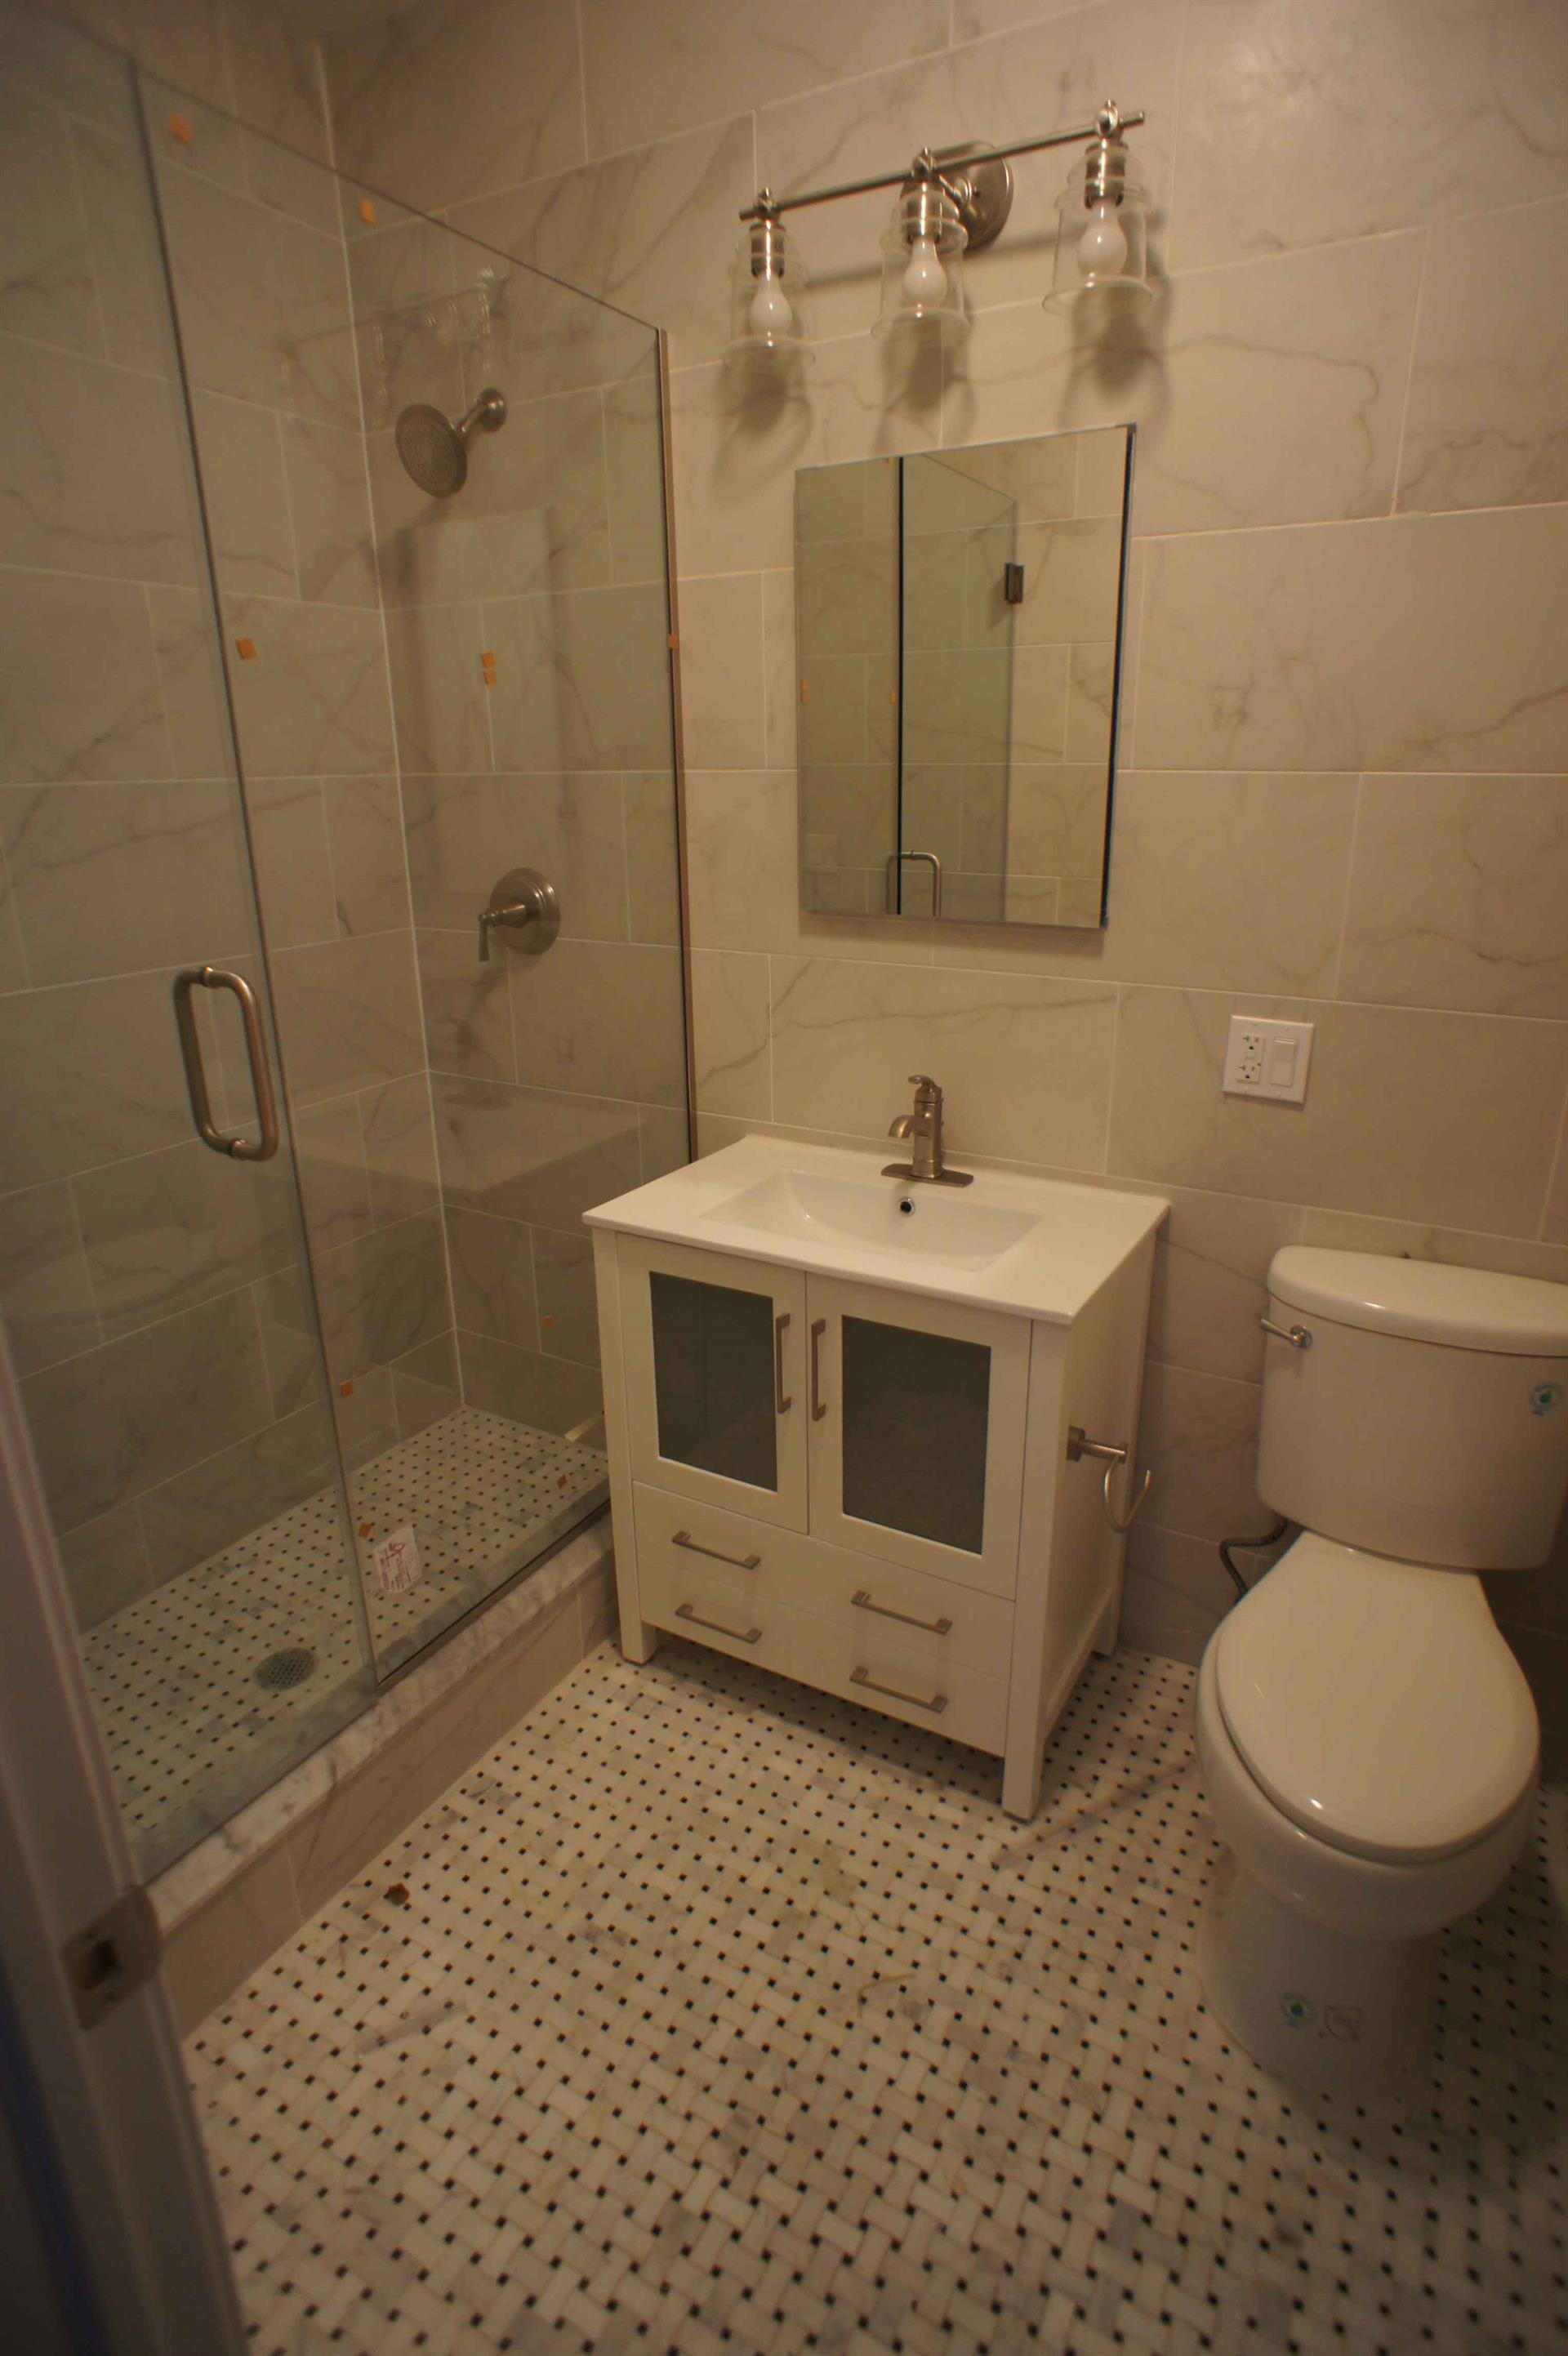 Additional photo for property listing at 1842 79th Street #3a  Brooklyn, New York 11214 United States